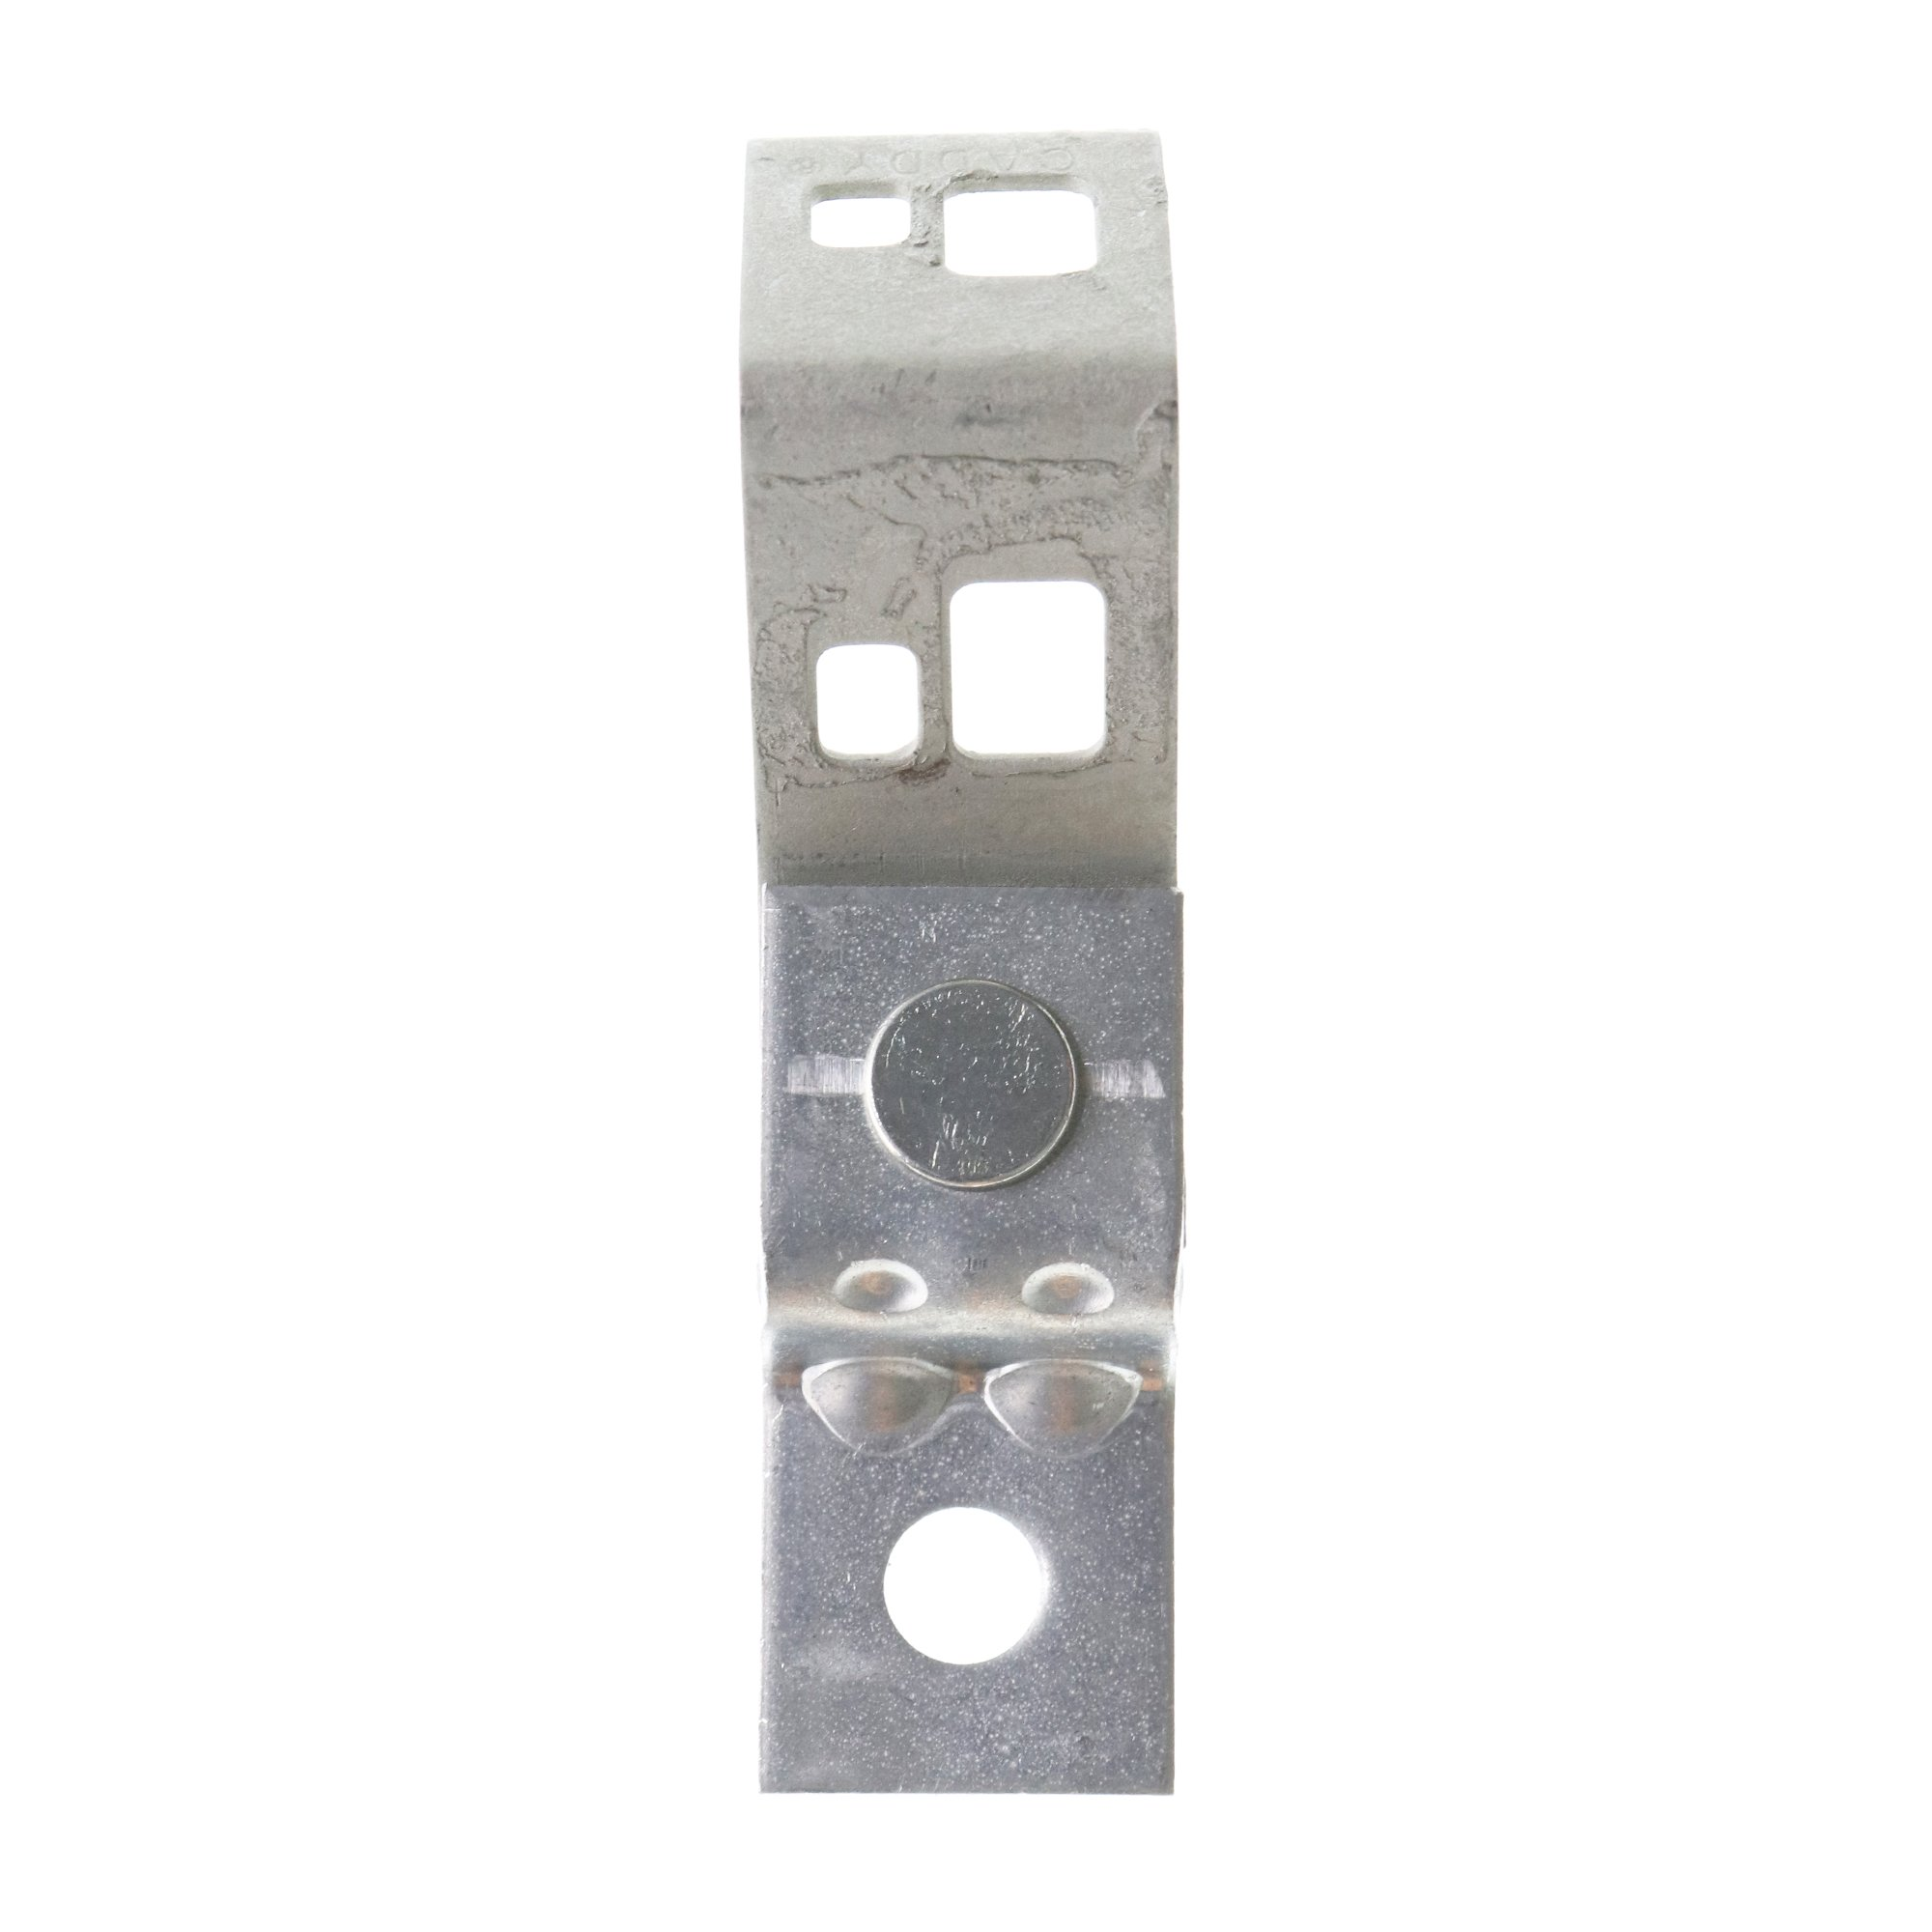 Caddy Erico 708AO Push Install Rod/Wire Hanger, Offset Angle Bracket, (100-Pack)